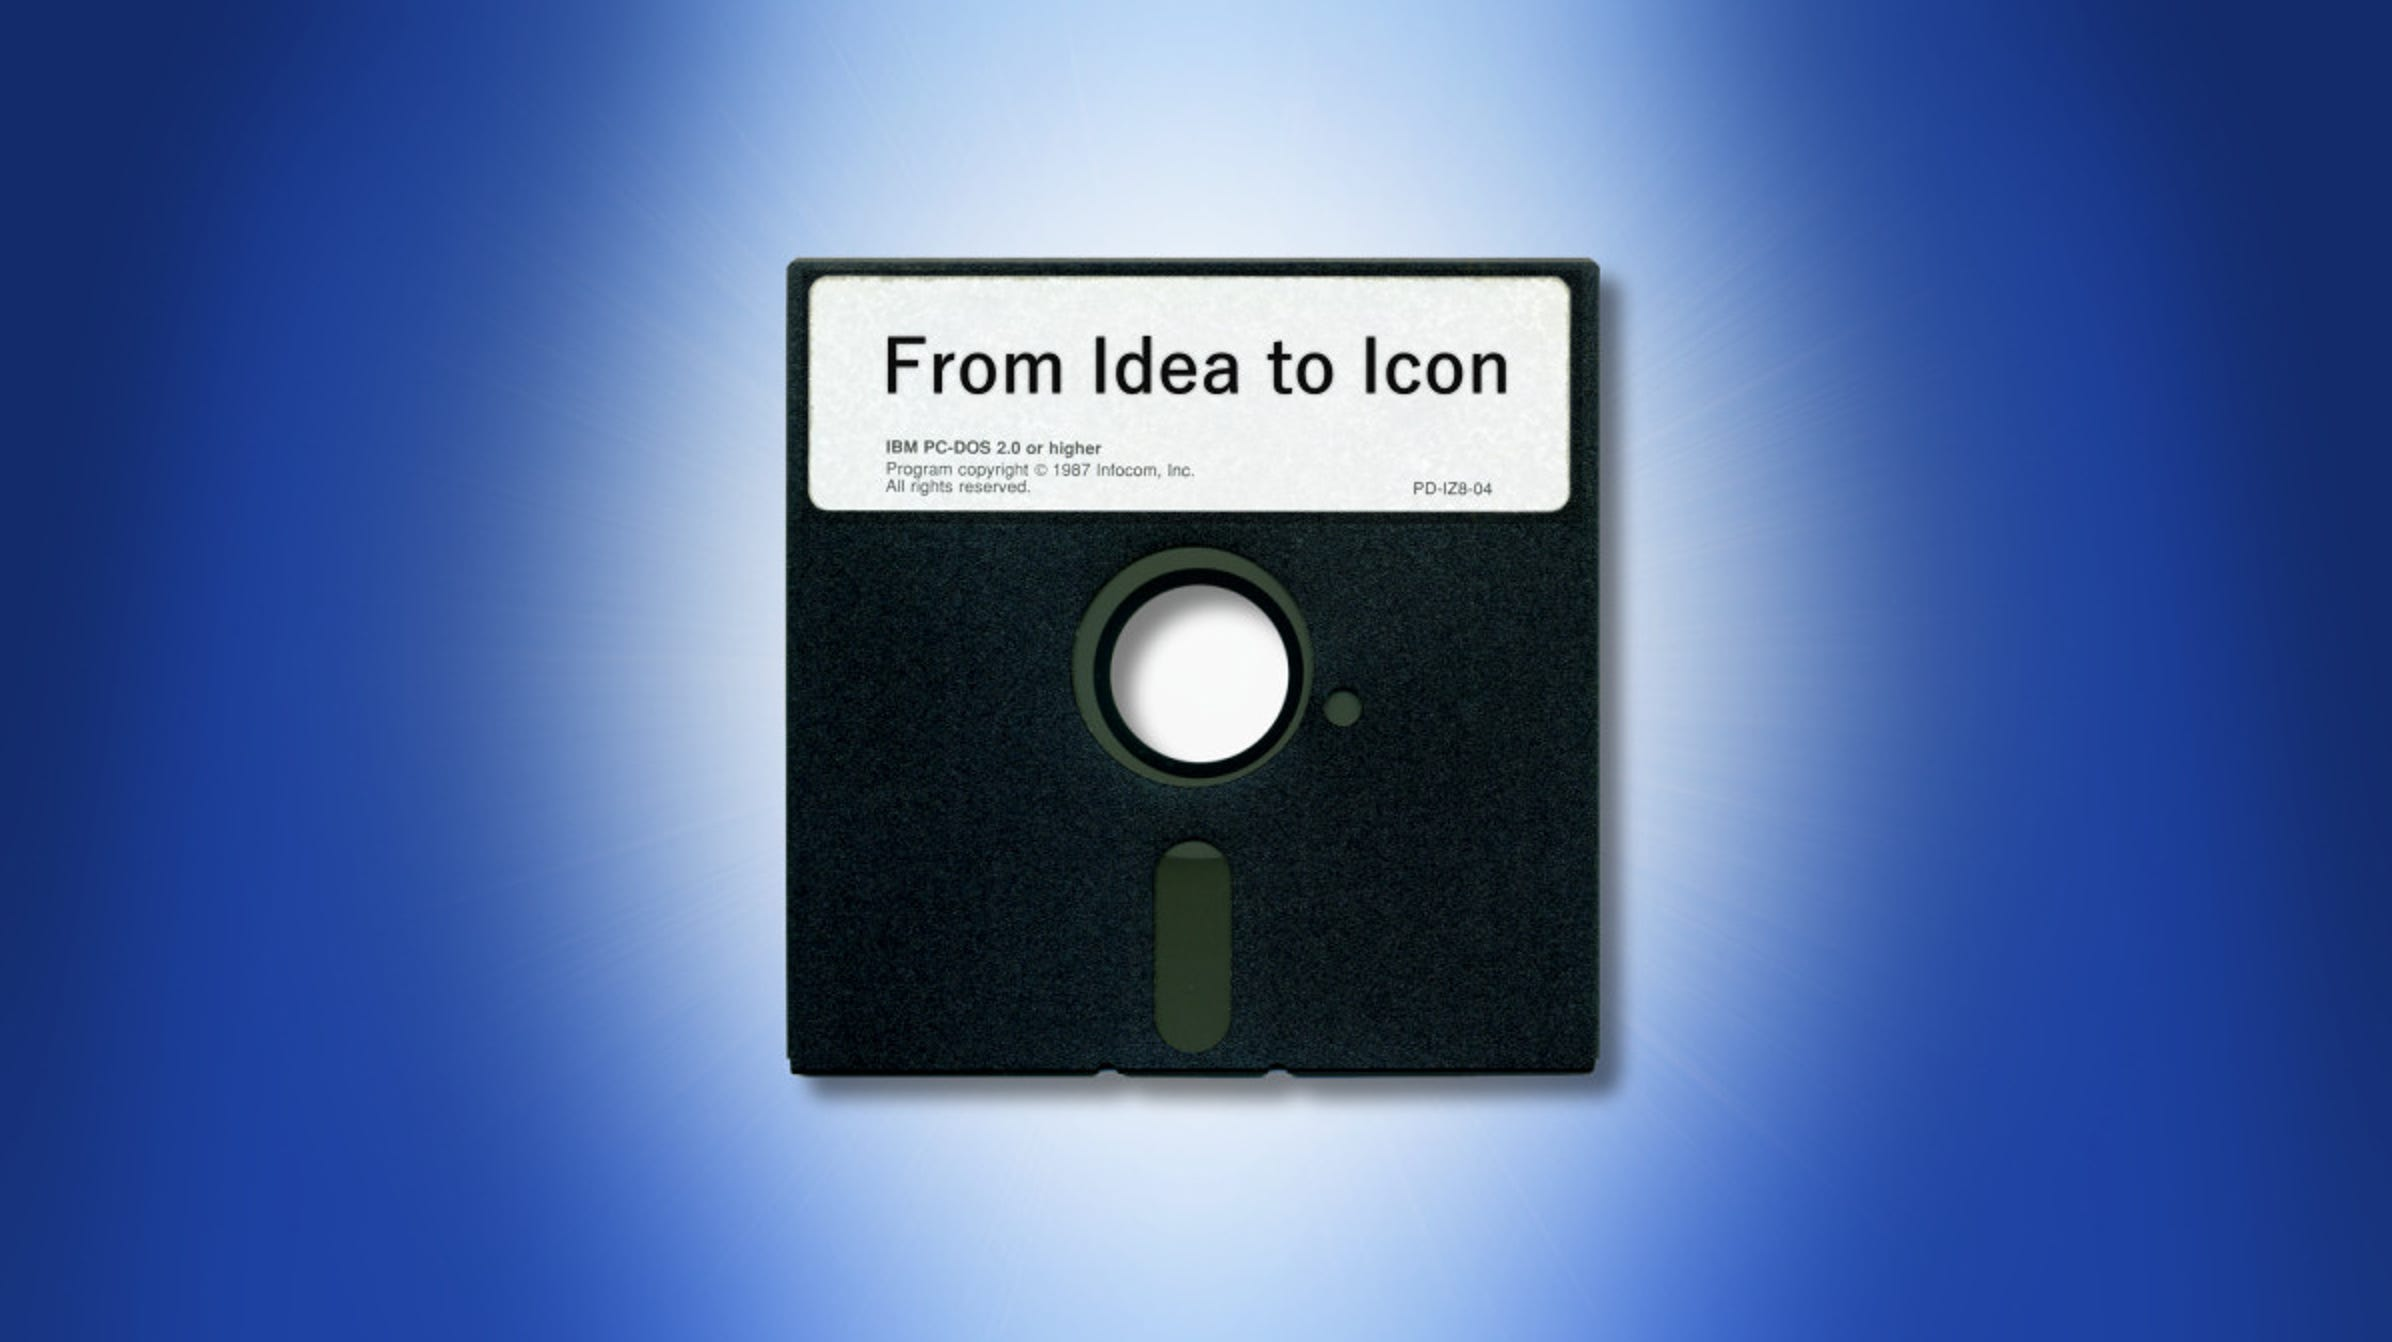 Fifty years ago, IBM introduced the first-ever floppy disk drive, the IBM 23FD, and the first floppy disks. Floppies made punched cards obsolete, and